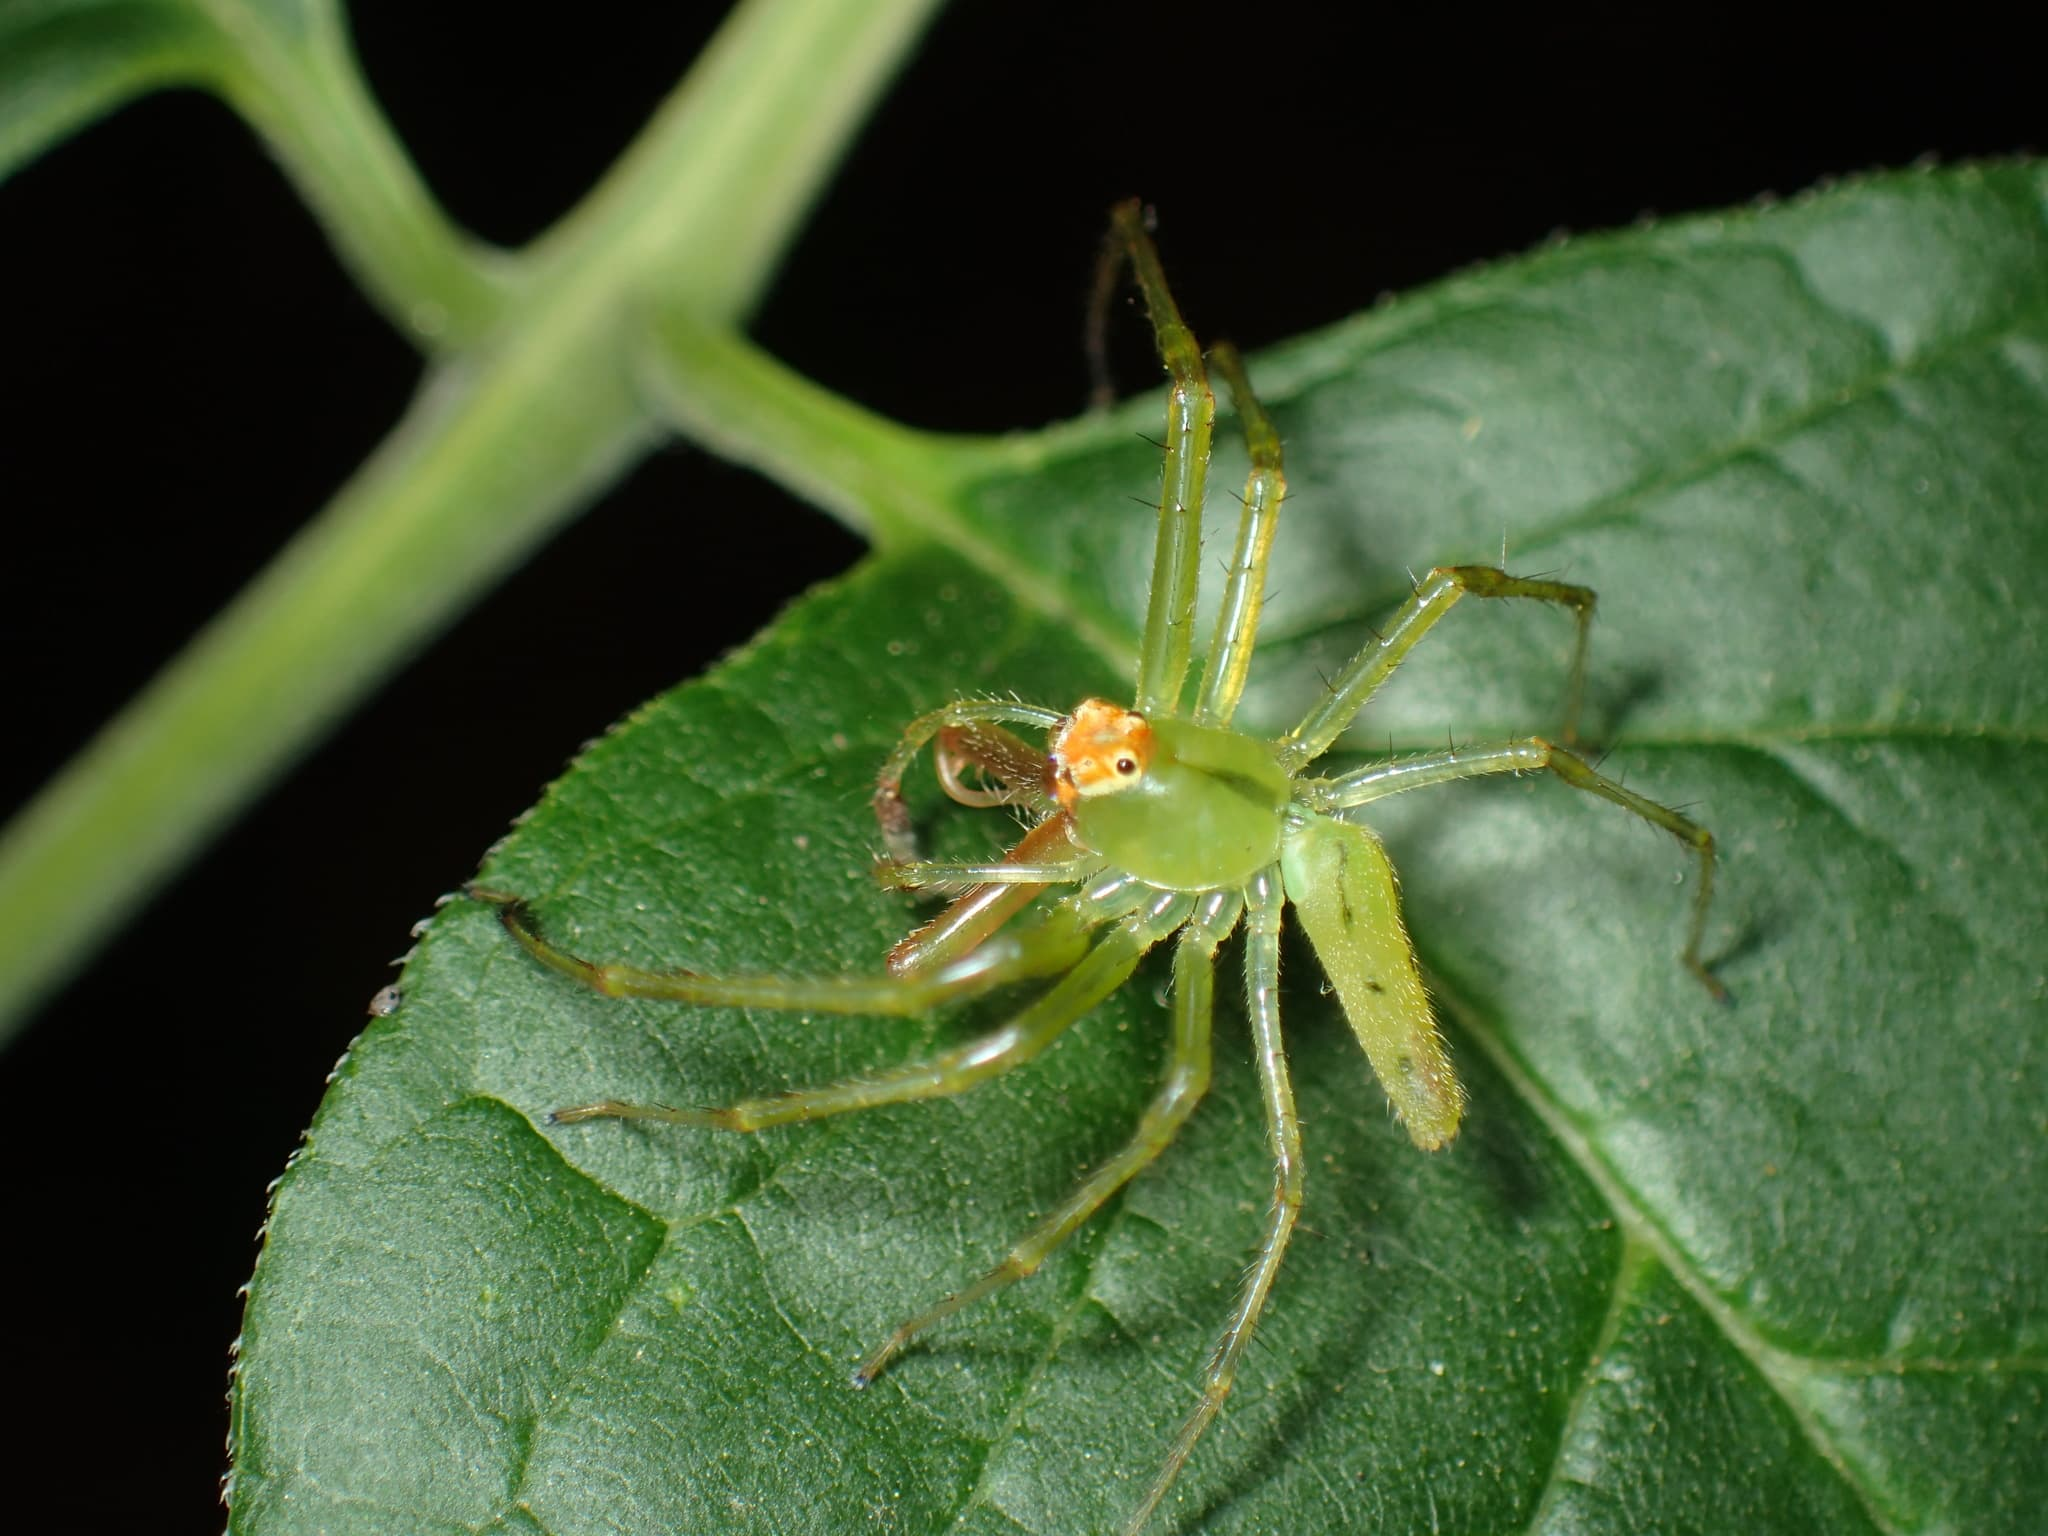 Picture of Lyssomanes viridis (Magnolia Green Jumper) - Male - Dorsal,Lateral